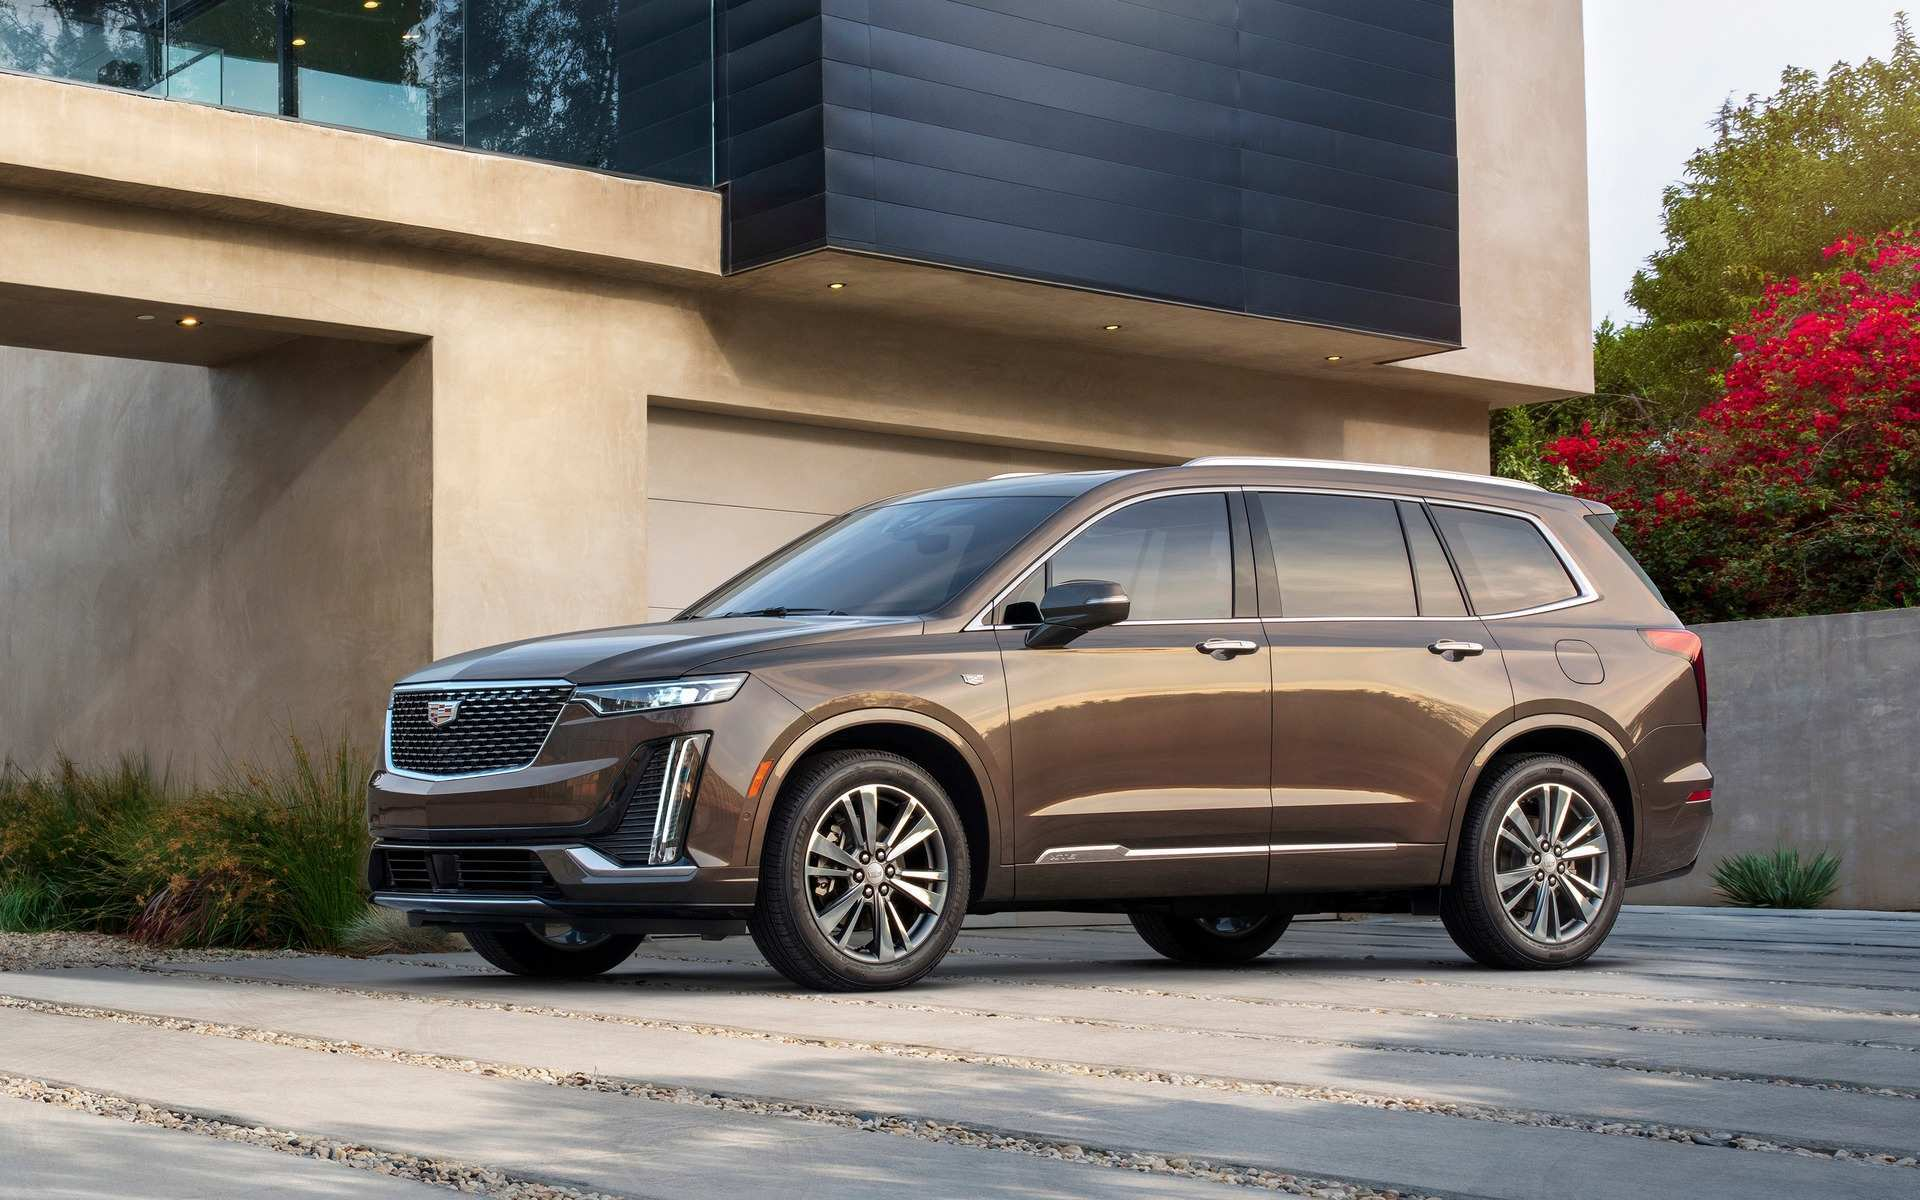 82 Gallery of 2020 Lincoln Aviator Vs Cadillac Xt6 History for 2020 Lincoln Aviator Vs Cadillac Xt6